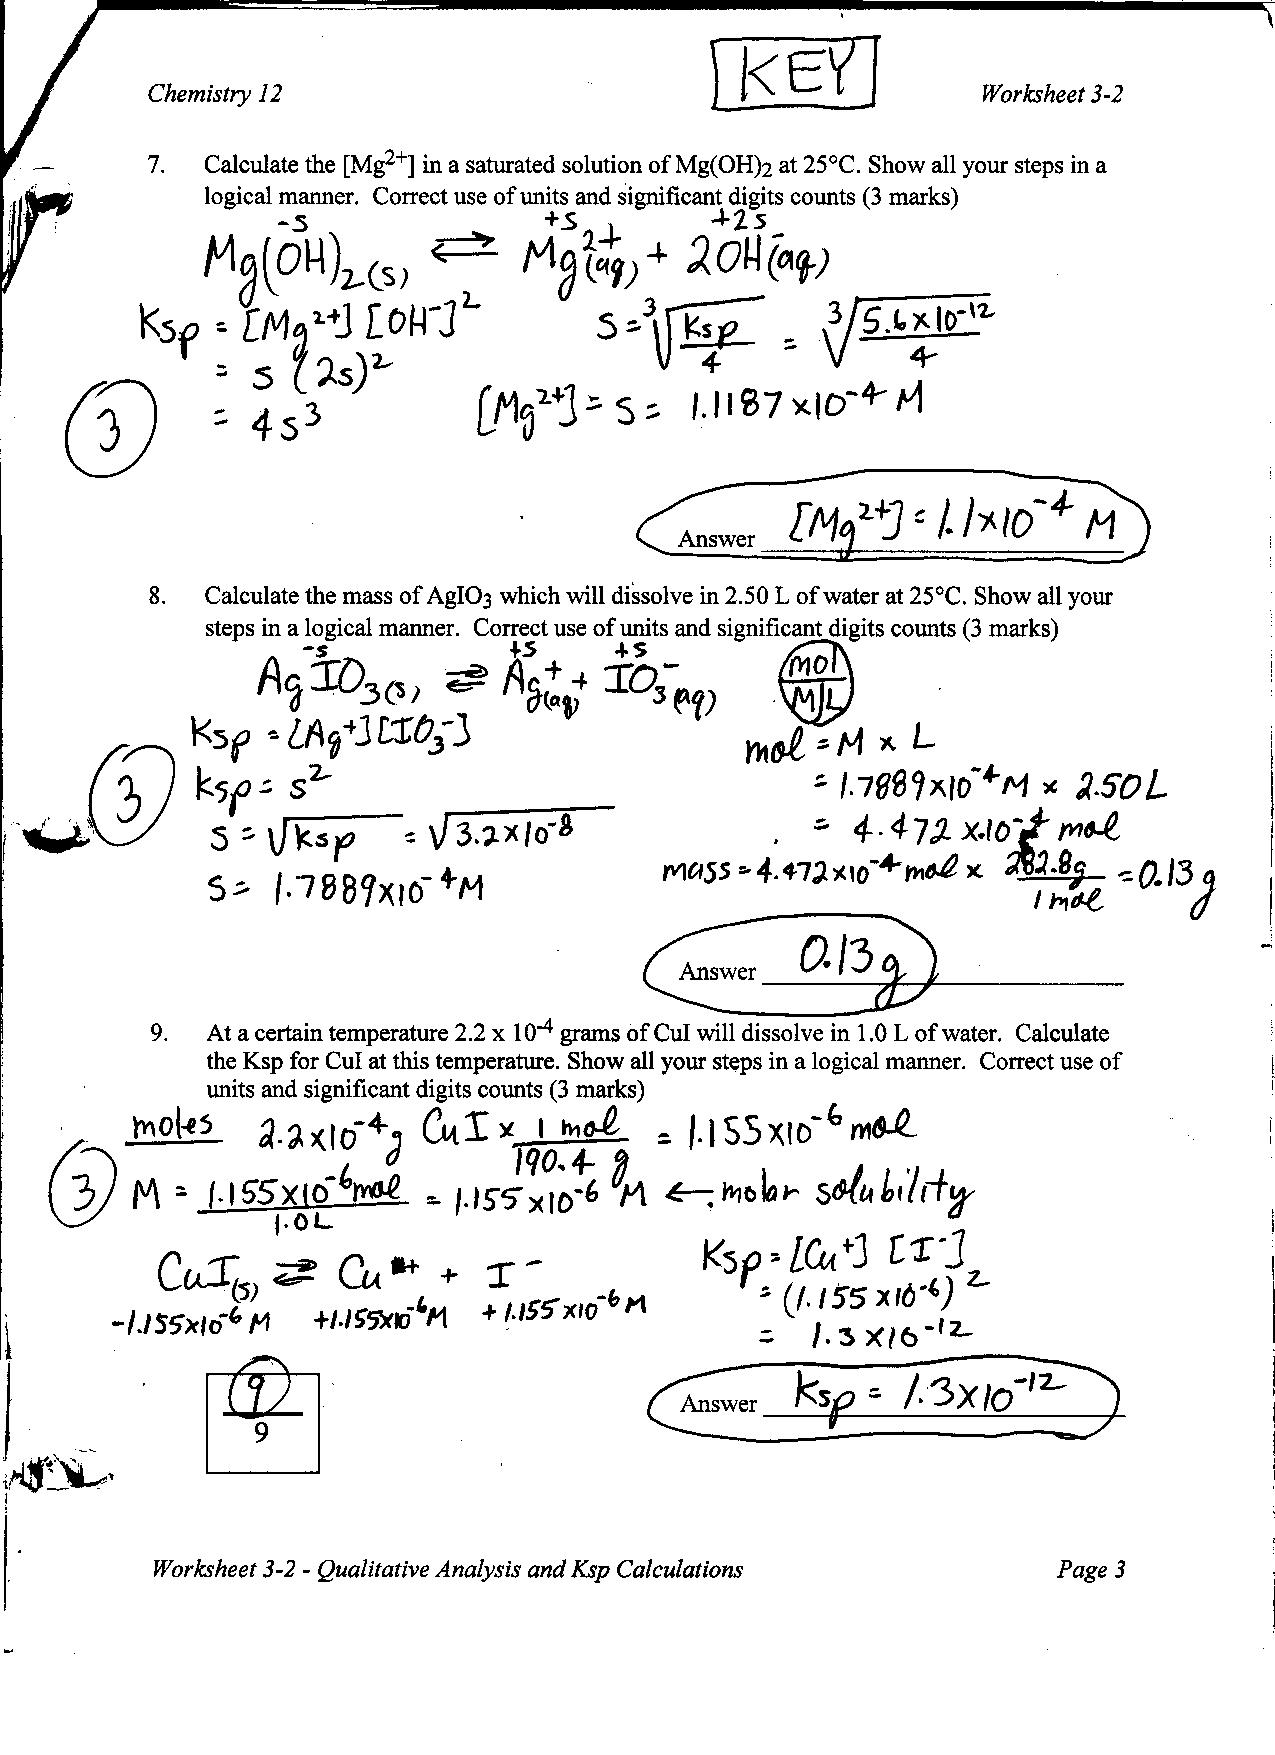 assignment keyp jpg worksheet 3 2 identifying and separating ions and ksp problems key p1 p2